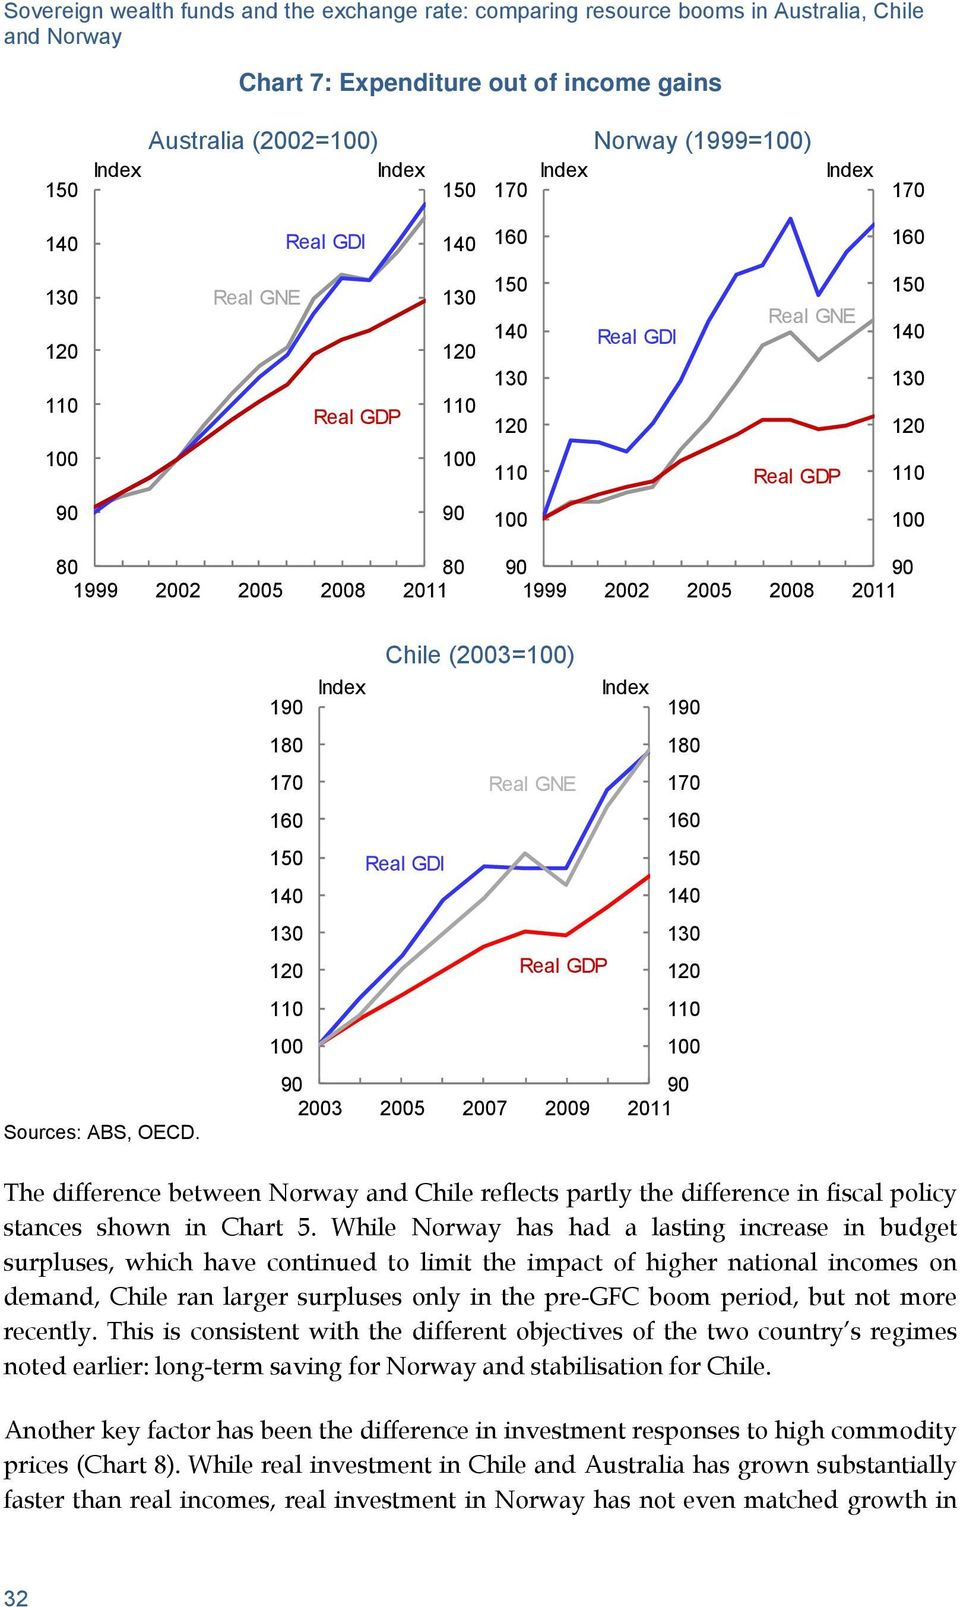 19 18 17 16 15 13 11 (23=) 19 18 Real GNE 17 16 Real GDI 15 13 Real GDP 11 9 9 23 25 27 29 211 The difference between Norway and reflects partly the difference in fiscal policy stances shown in Chart